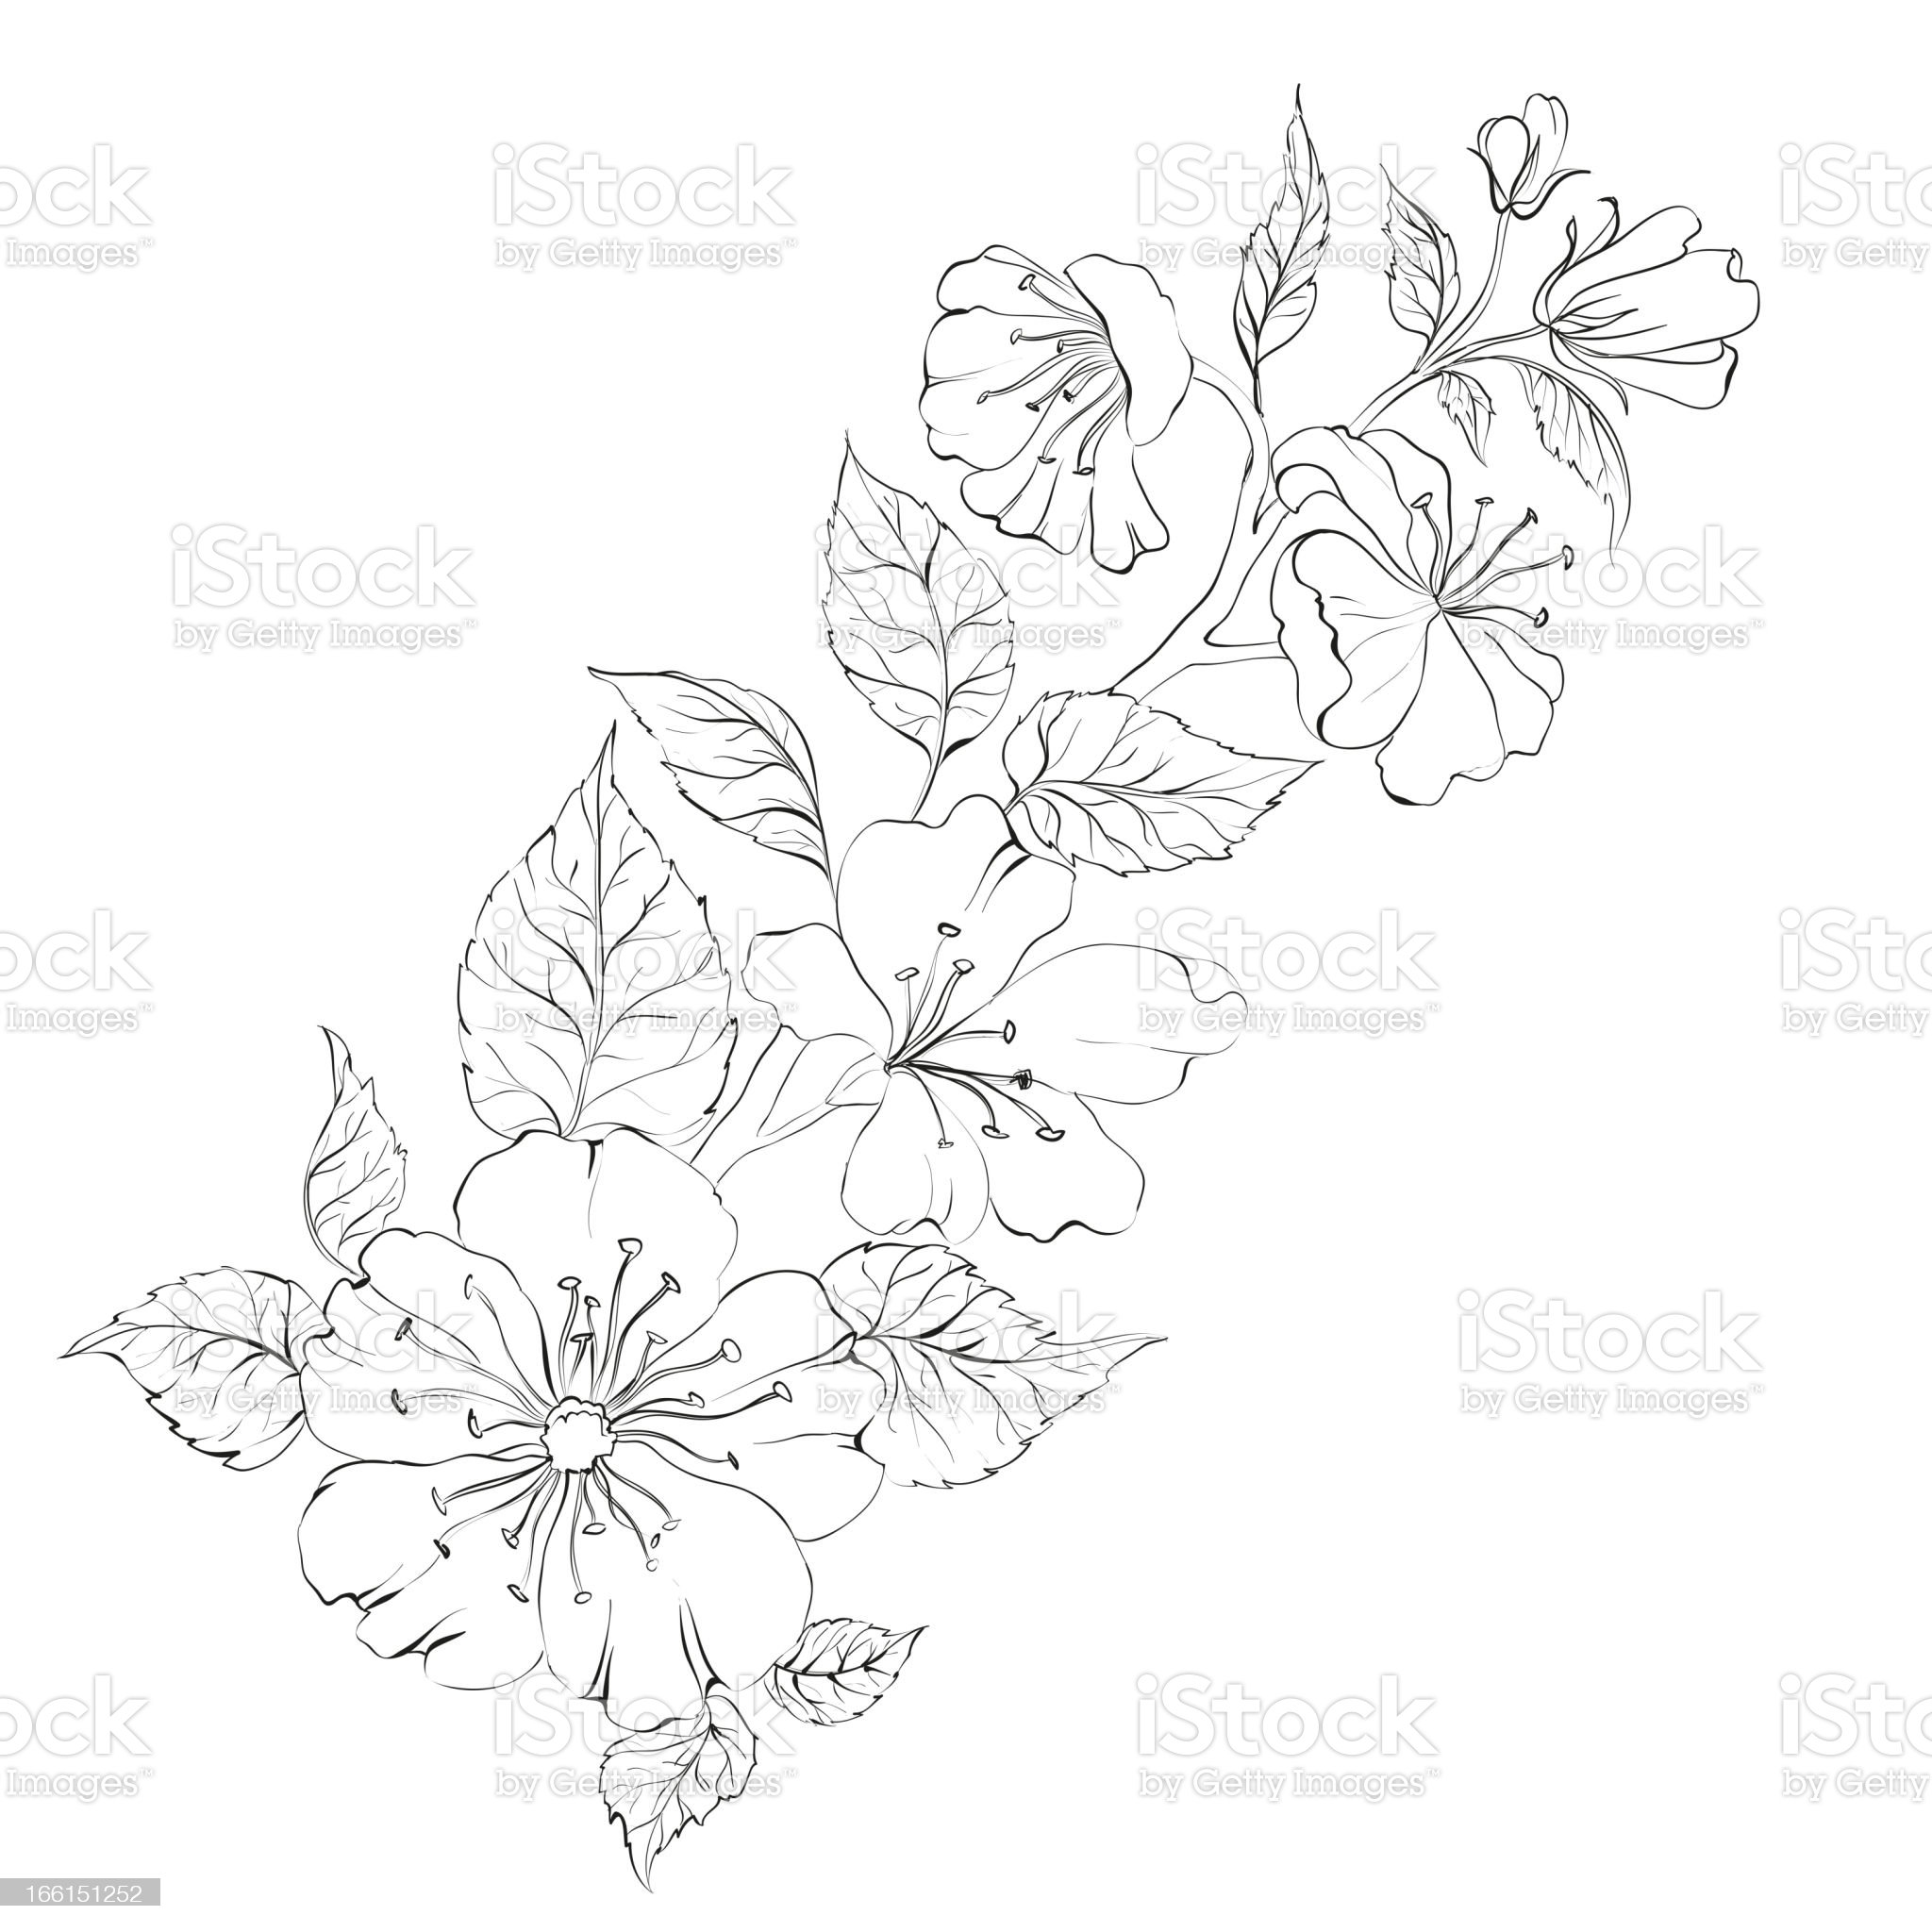 Sacura royalty-free stock vector art